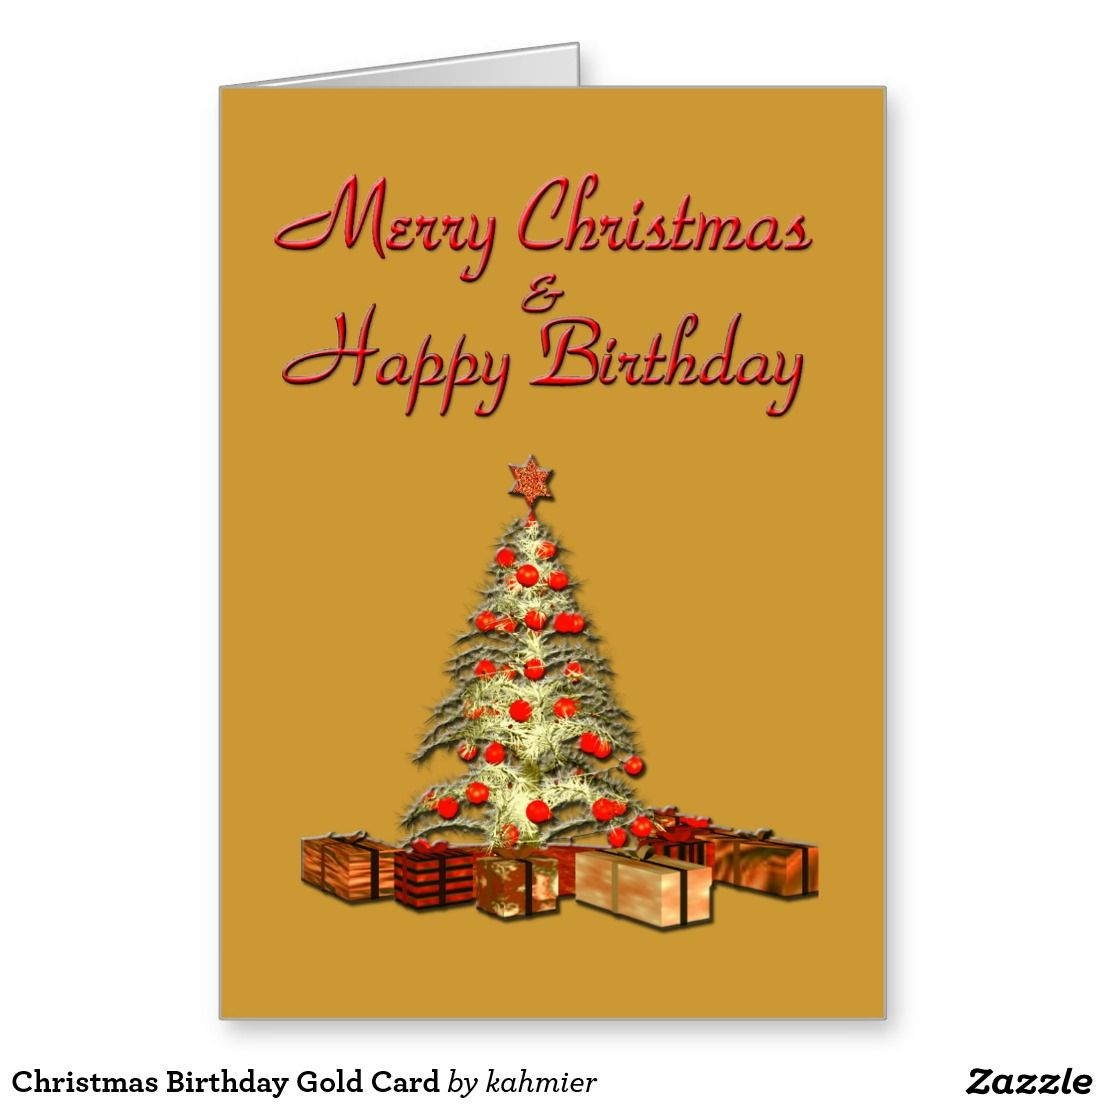 Christmas Birthday Gold Card